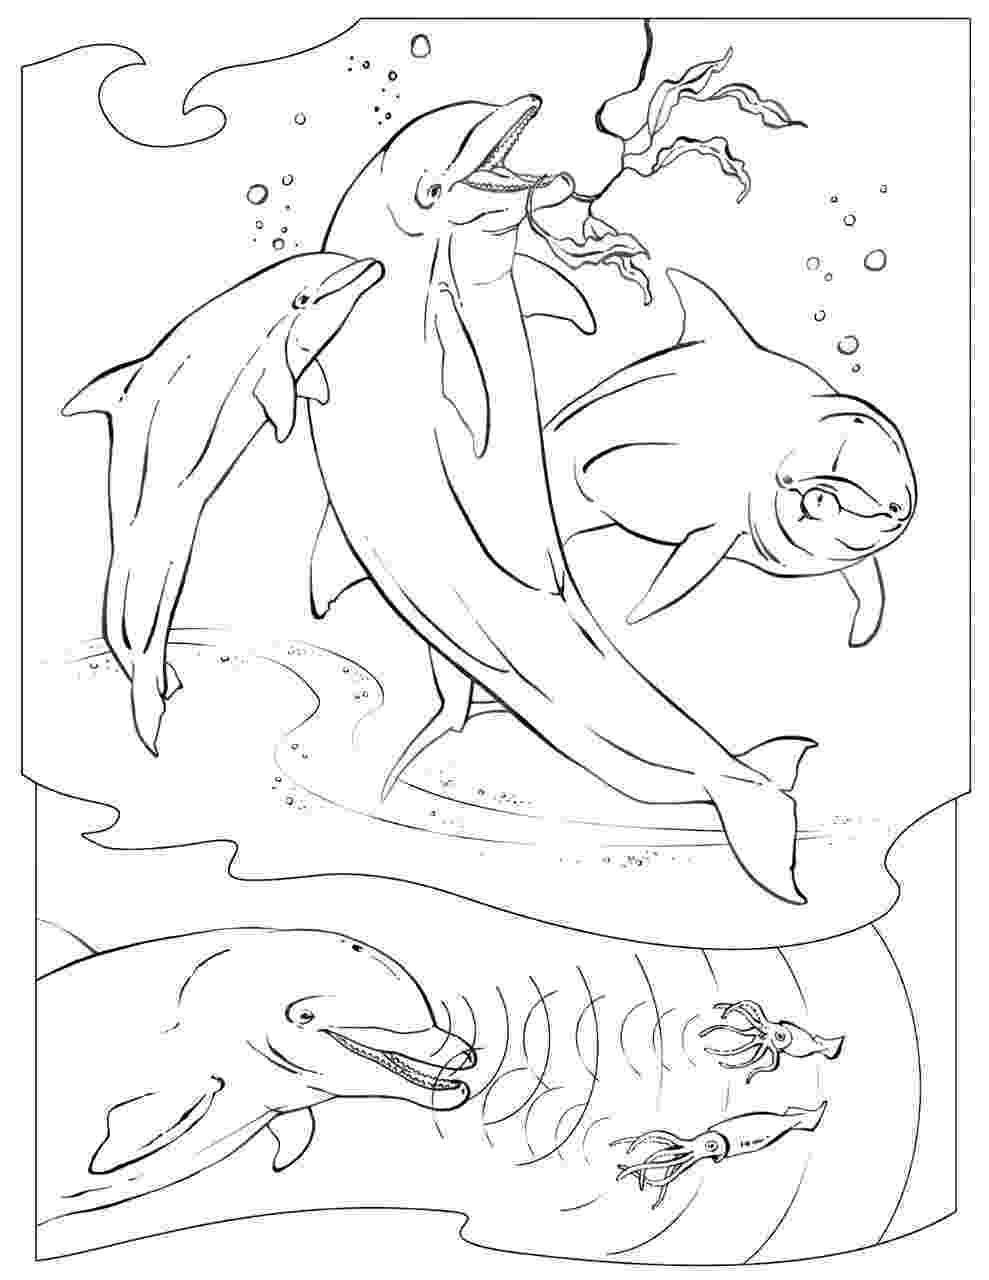 animal coloring pages national geographic coloring pages wildlife research conservation geographic pages national coloring animal